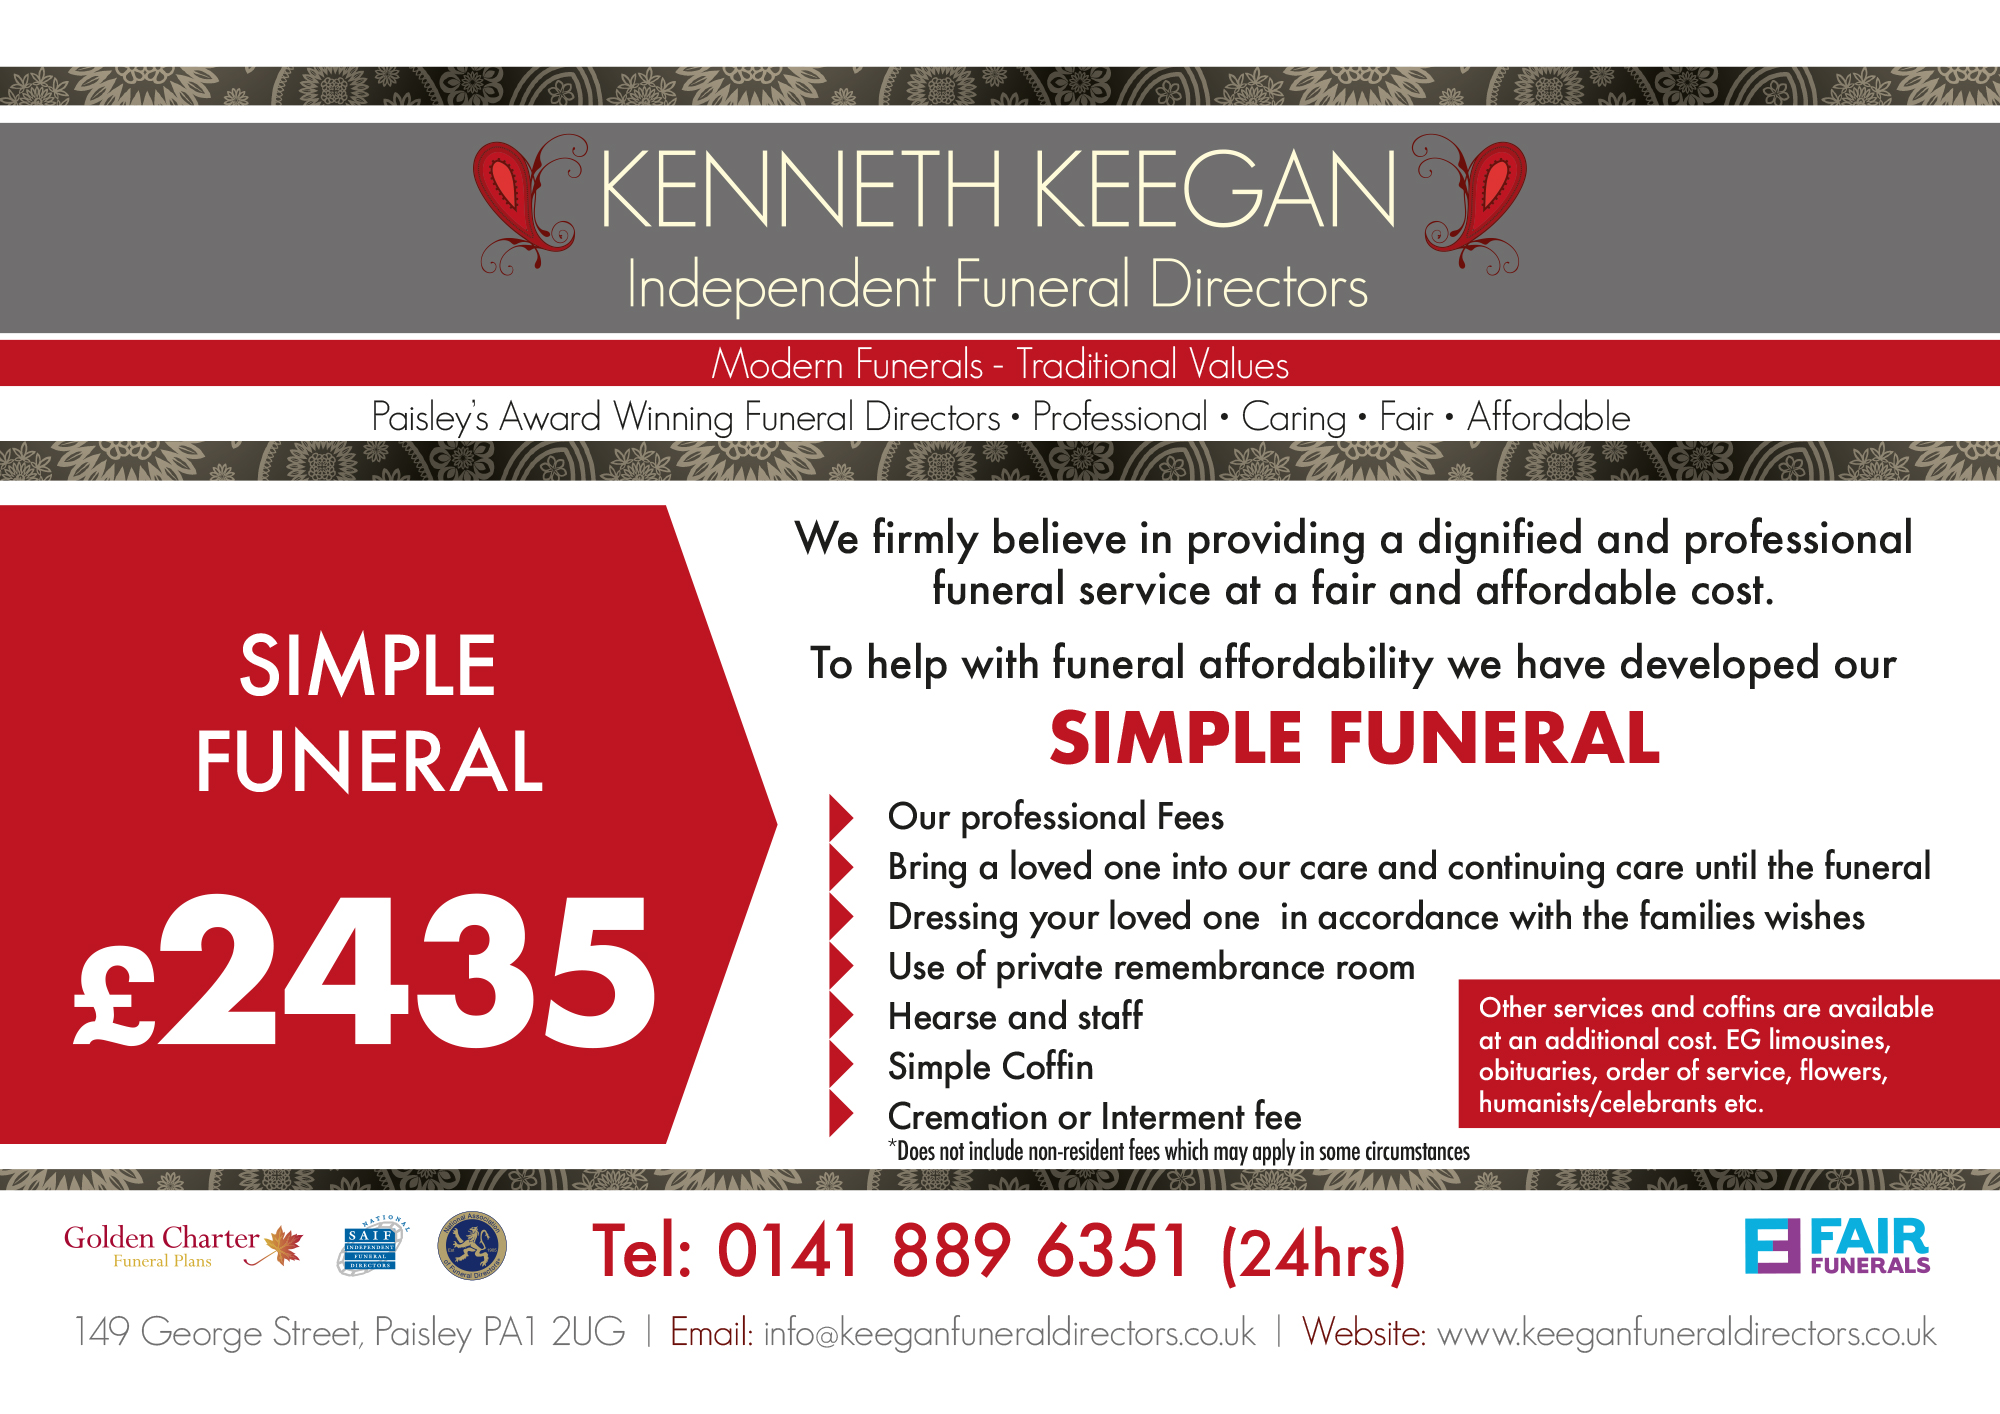 Kenneth-Keegan-Simple-Funeral-A4L-11-10-18